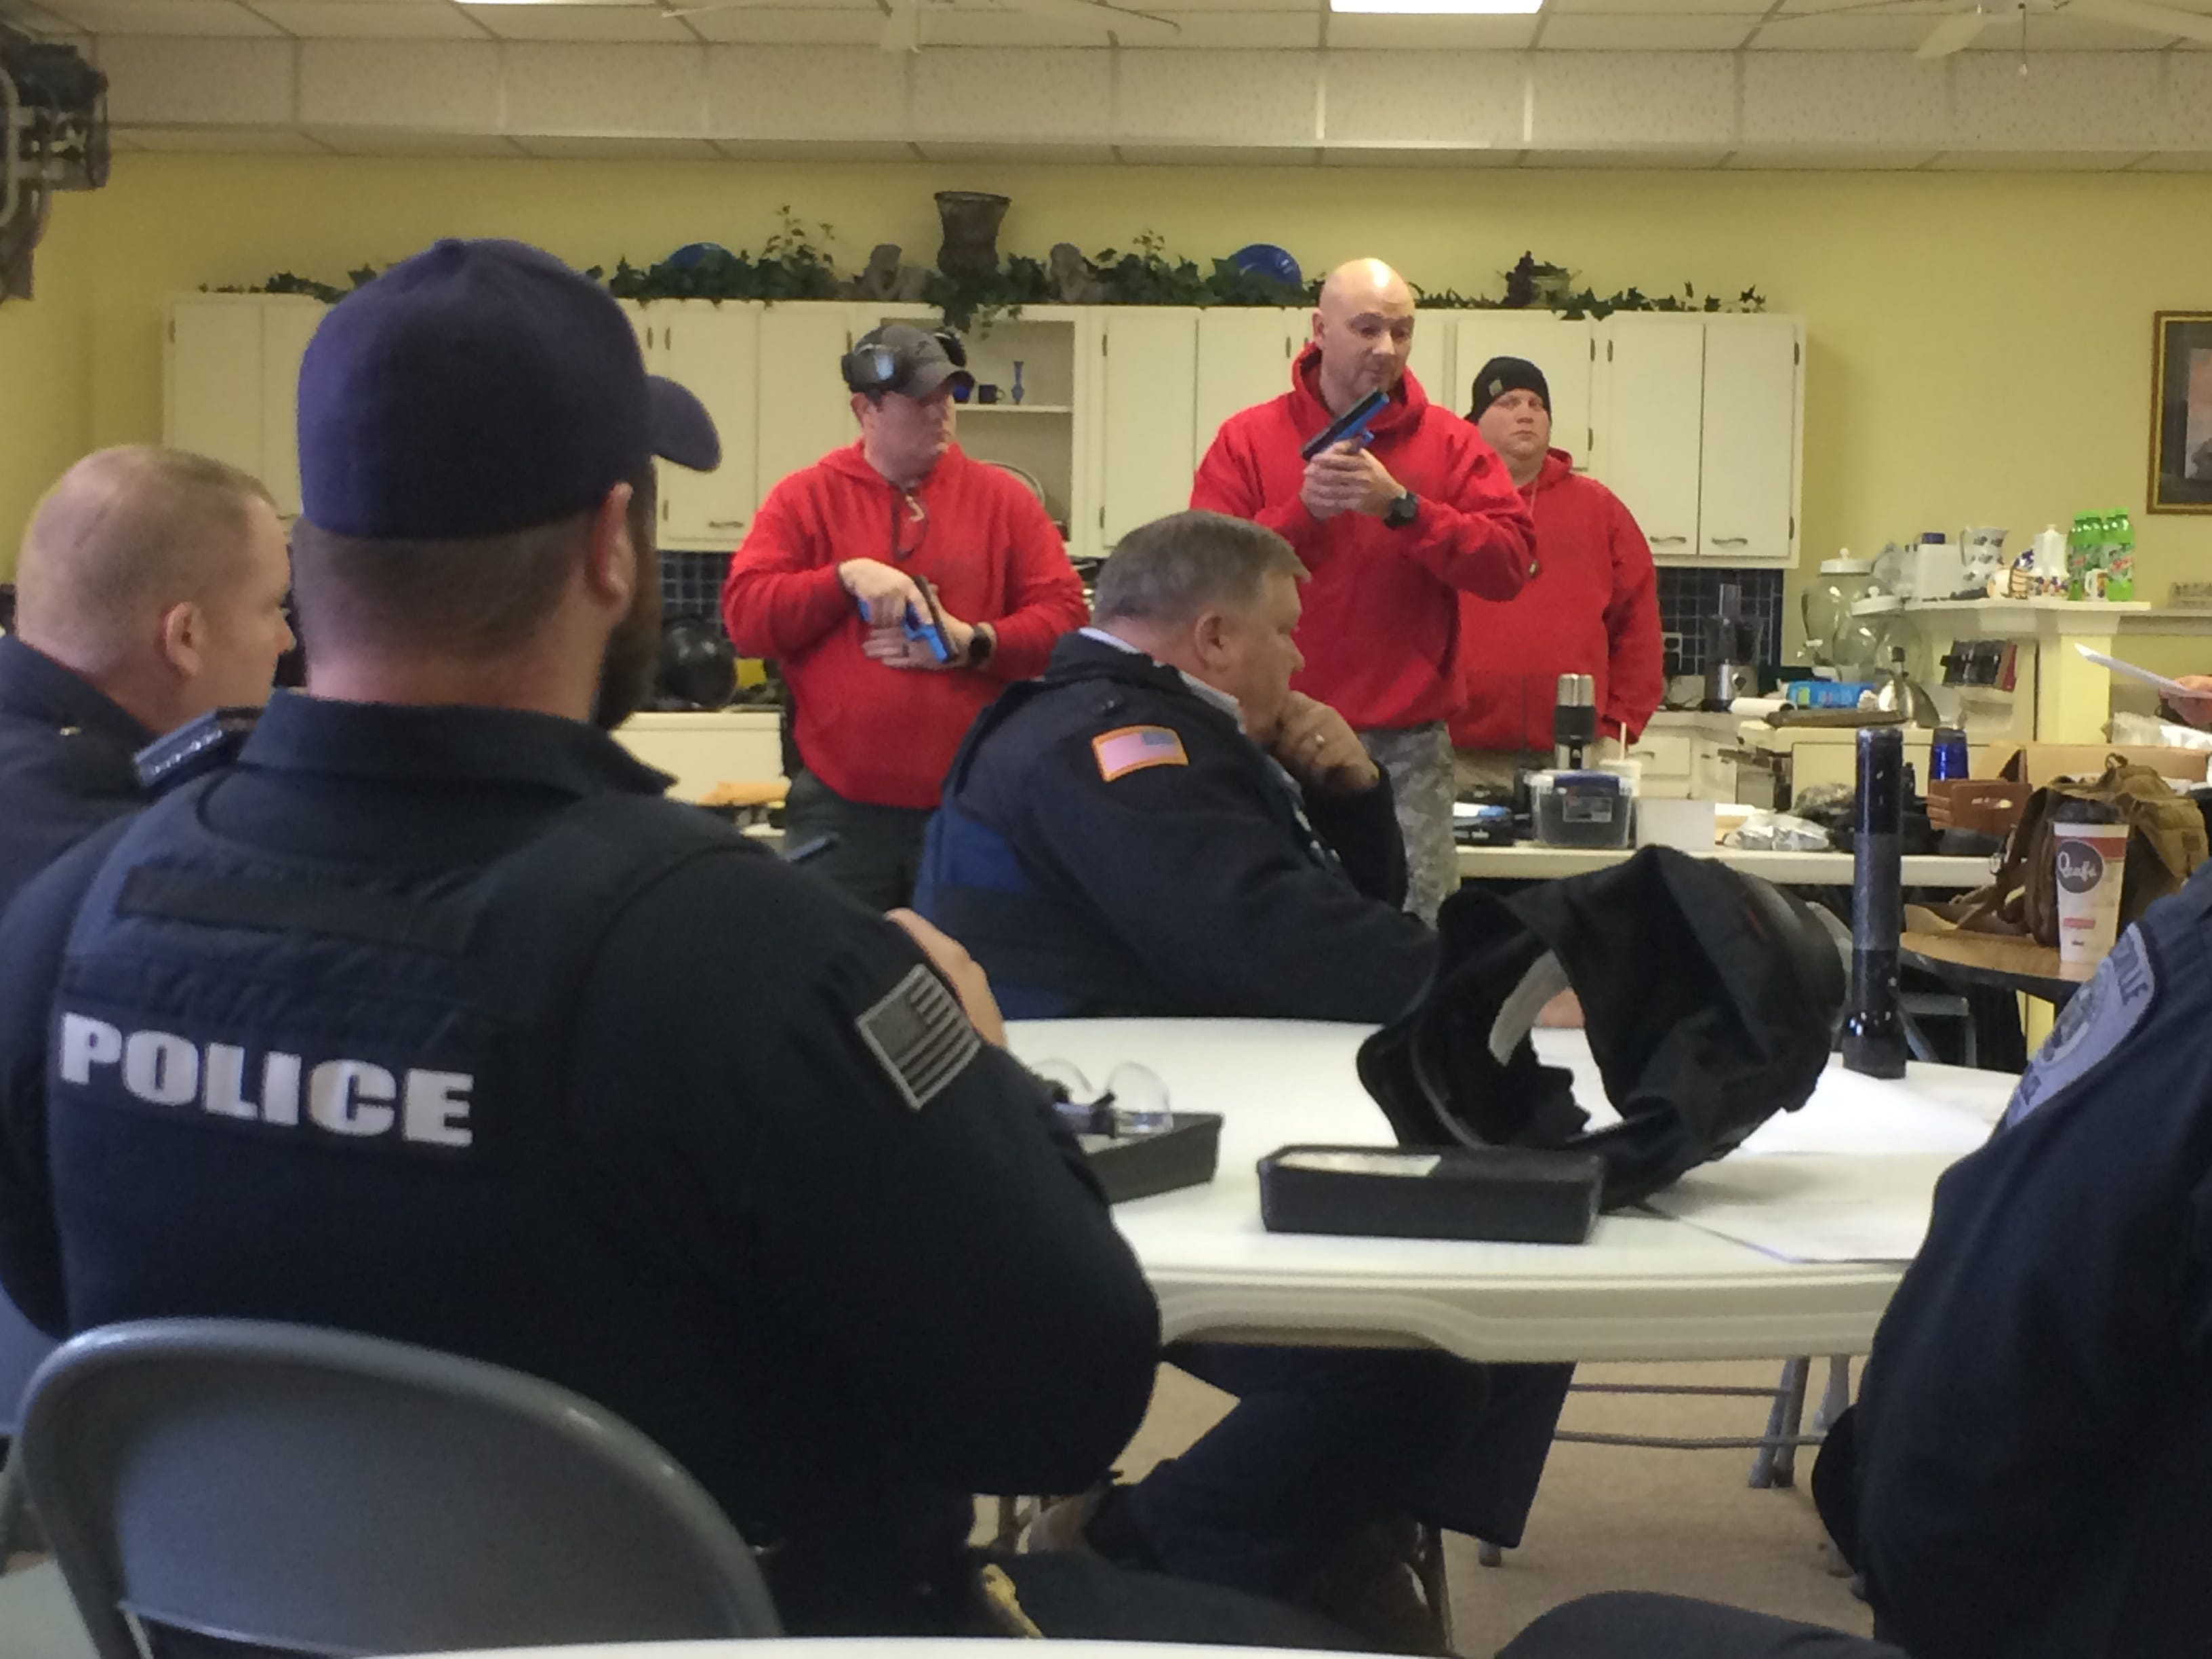 Officer Jordan Tudor (from left), Sgt. Chad Porfidio and Detective Scott Glover, training instructors, demonstrated techniques prior to Wednesday's active-shooter training scenarios.